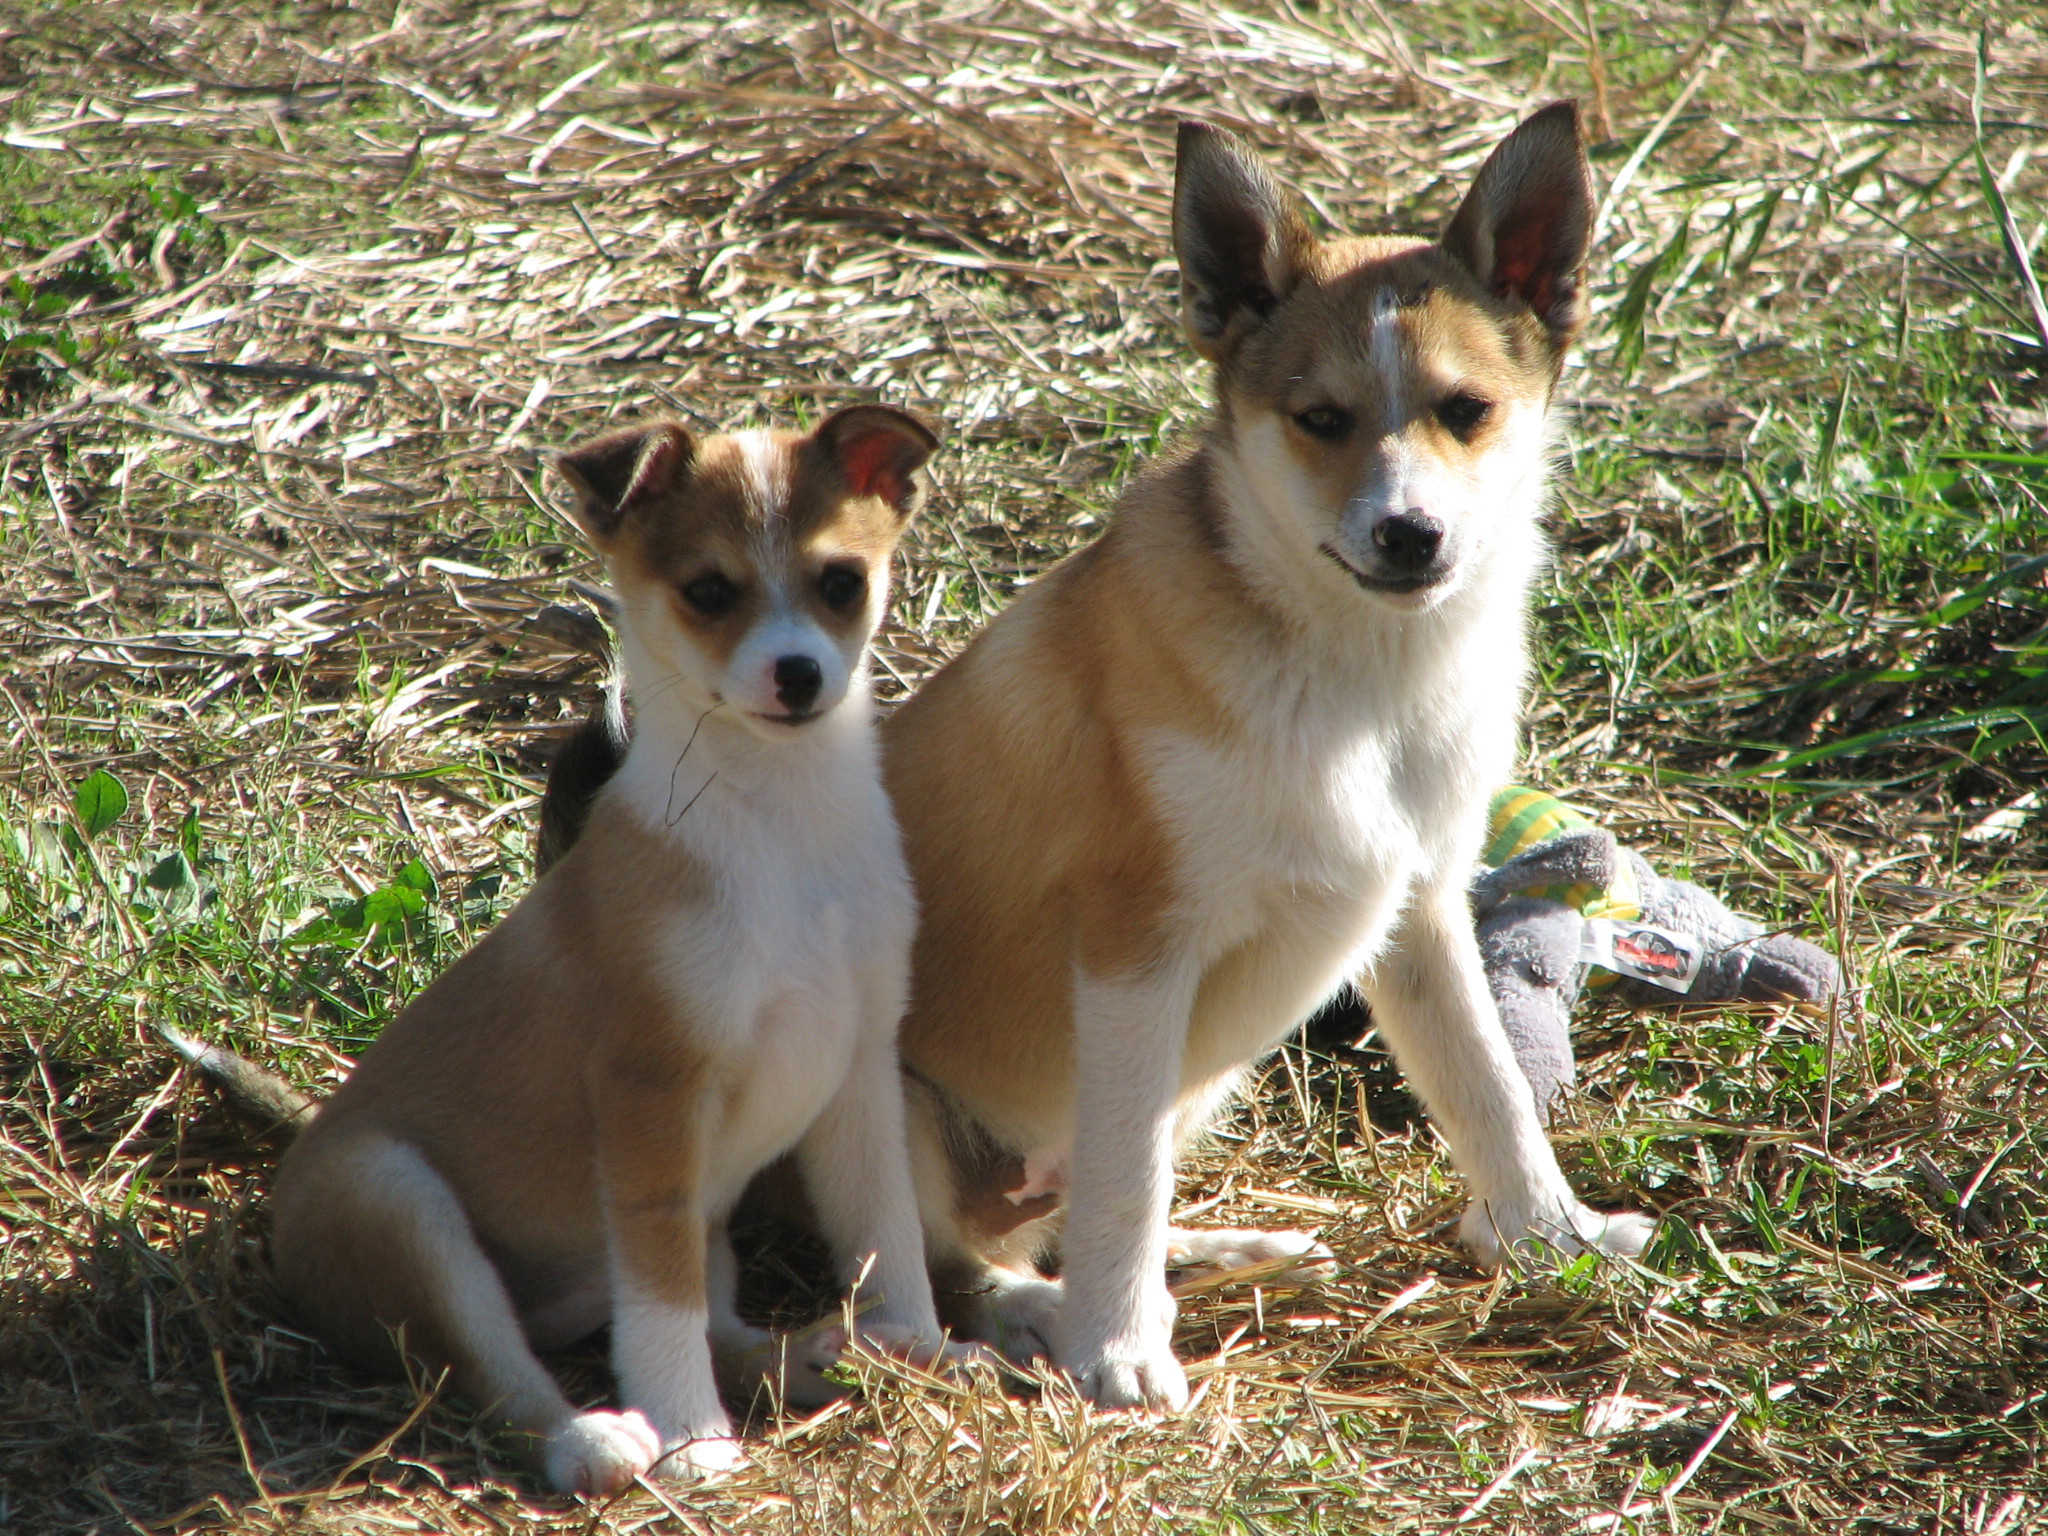 Two cute Norwegian Lundehund dogs wallpaper